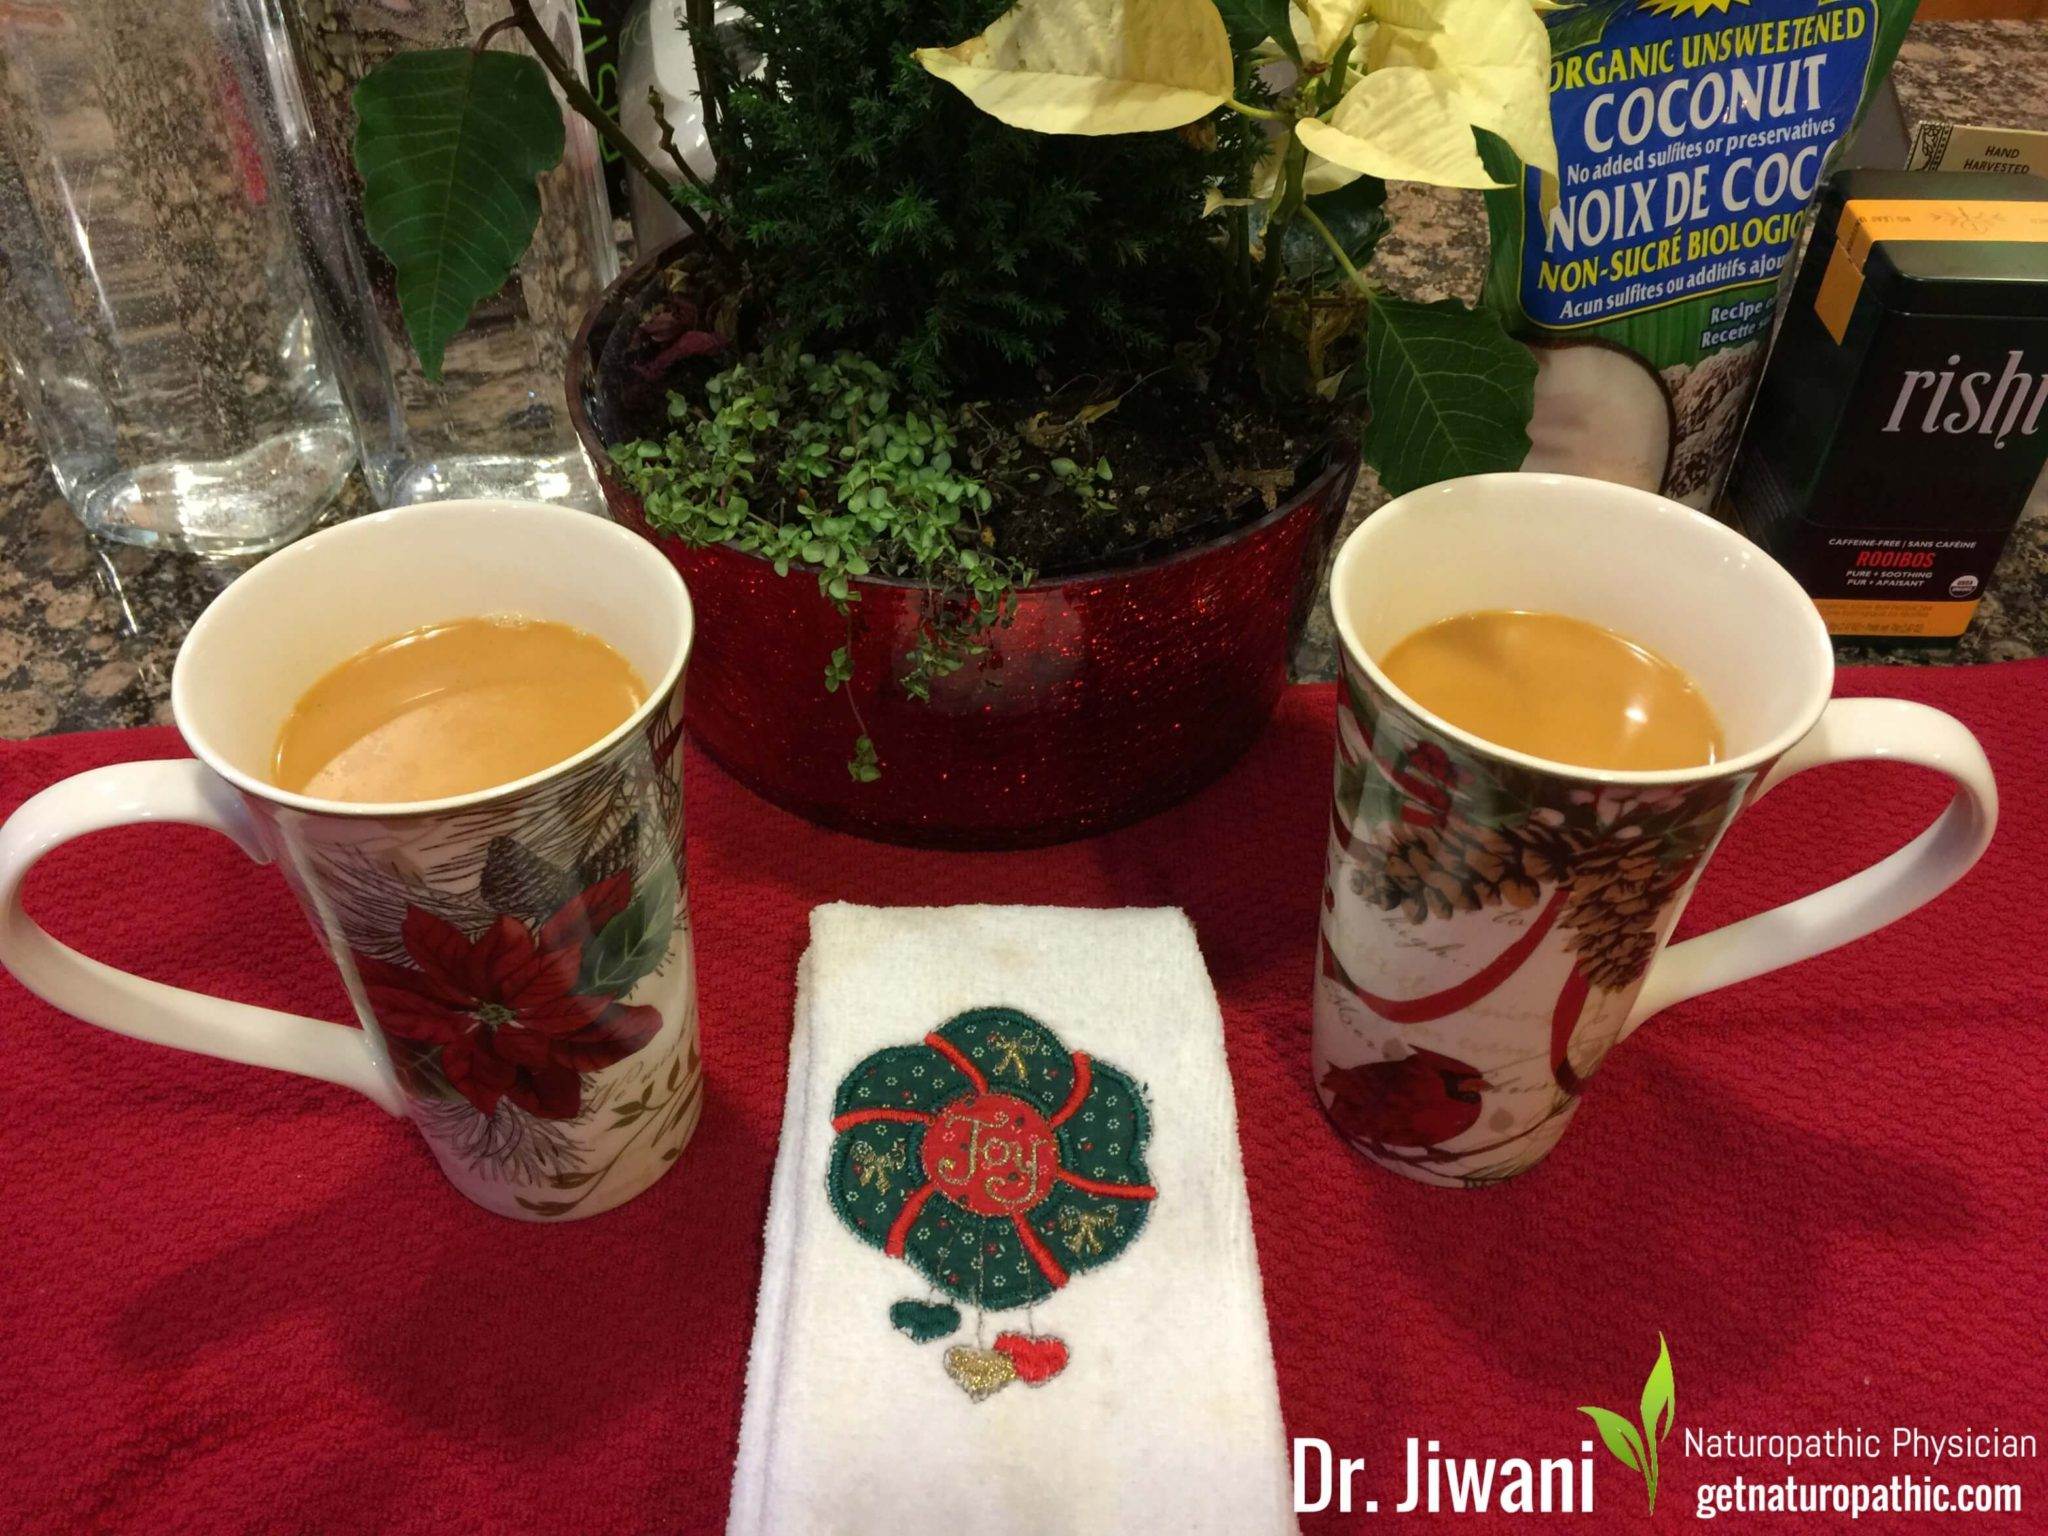 Dr. Jiwani's Caffeine-Free Chai Latte provides the comfort of a latte with the kick of Indian Spices, yet Low Carb, Gluten-Free, Egg-Free, Dairy-Free, Soy-Free, Corn-Free, Ideal For Paleo, Keto, Vegan & Allergy-Free Diets | Dr. Jiwani's Naturopathic Nuggets Blog